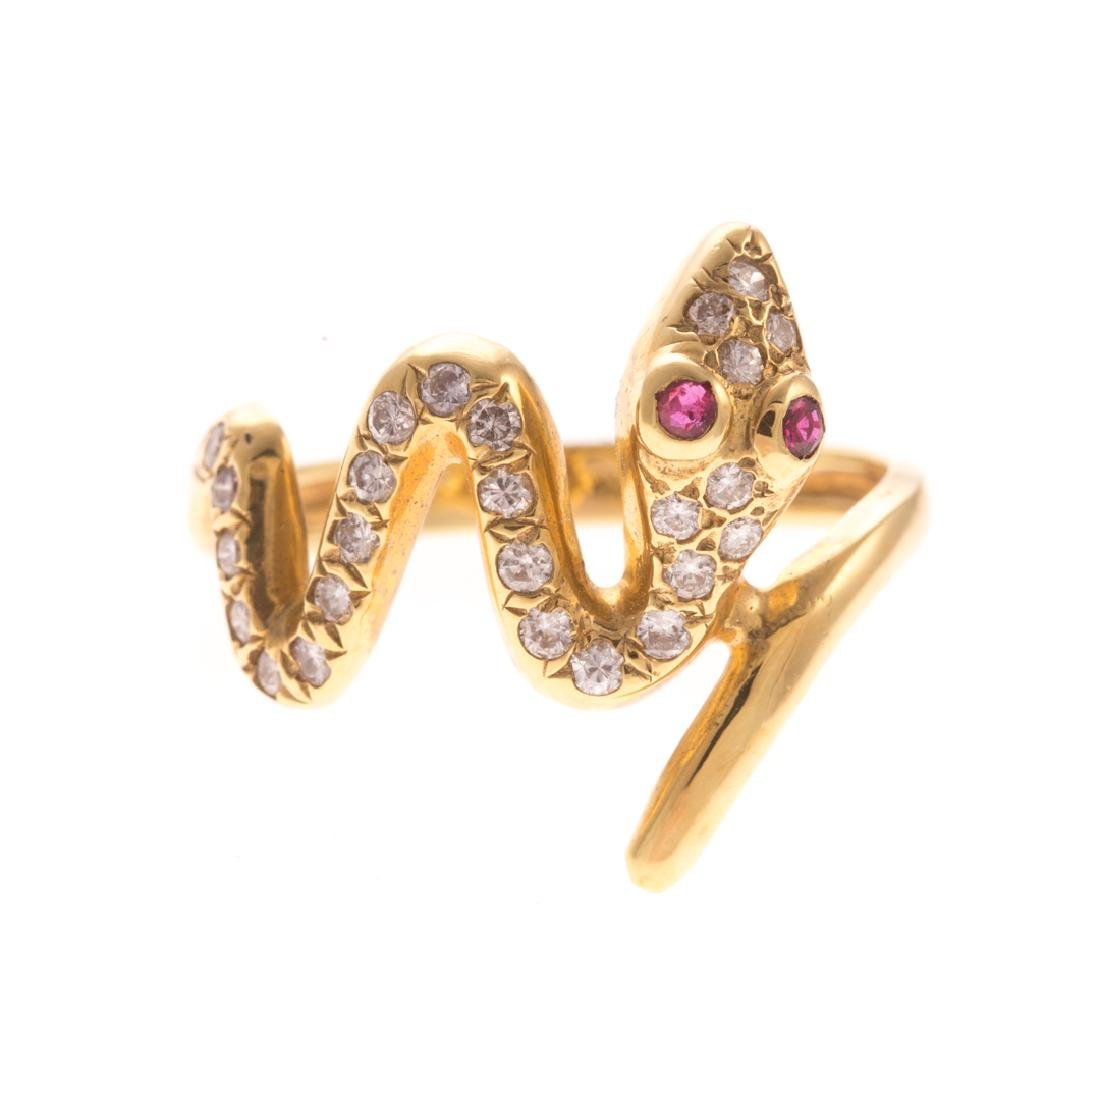 A Lady's Diamond Serpent Ring in 18K Gold